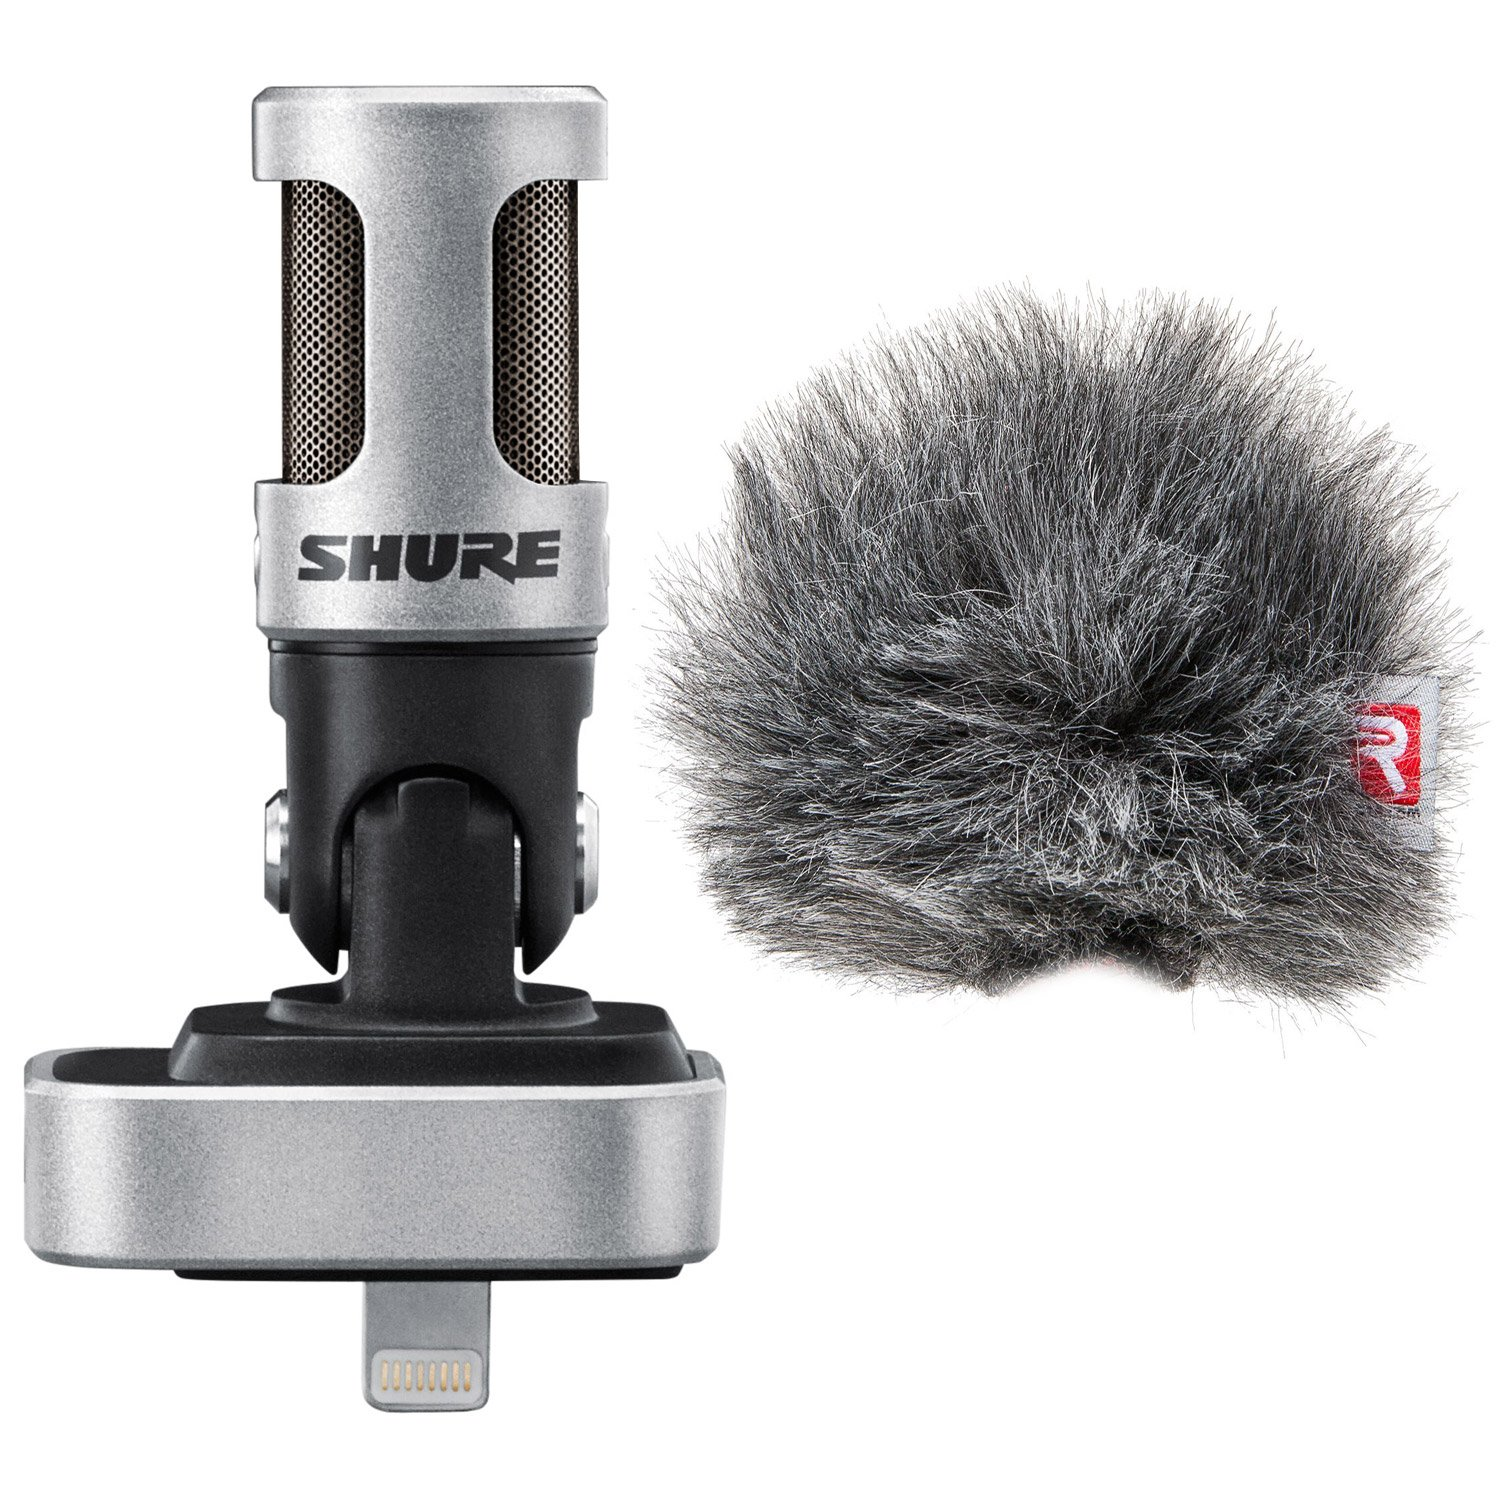 Shure MV88 iOS Digital Stereo Condenser Microphone w/ Rycote Windjammer Windscreen - Bundle MV88_AMV88-FUR